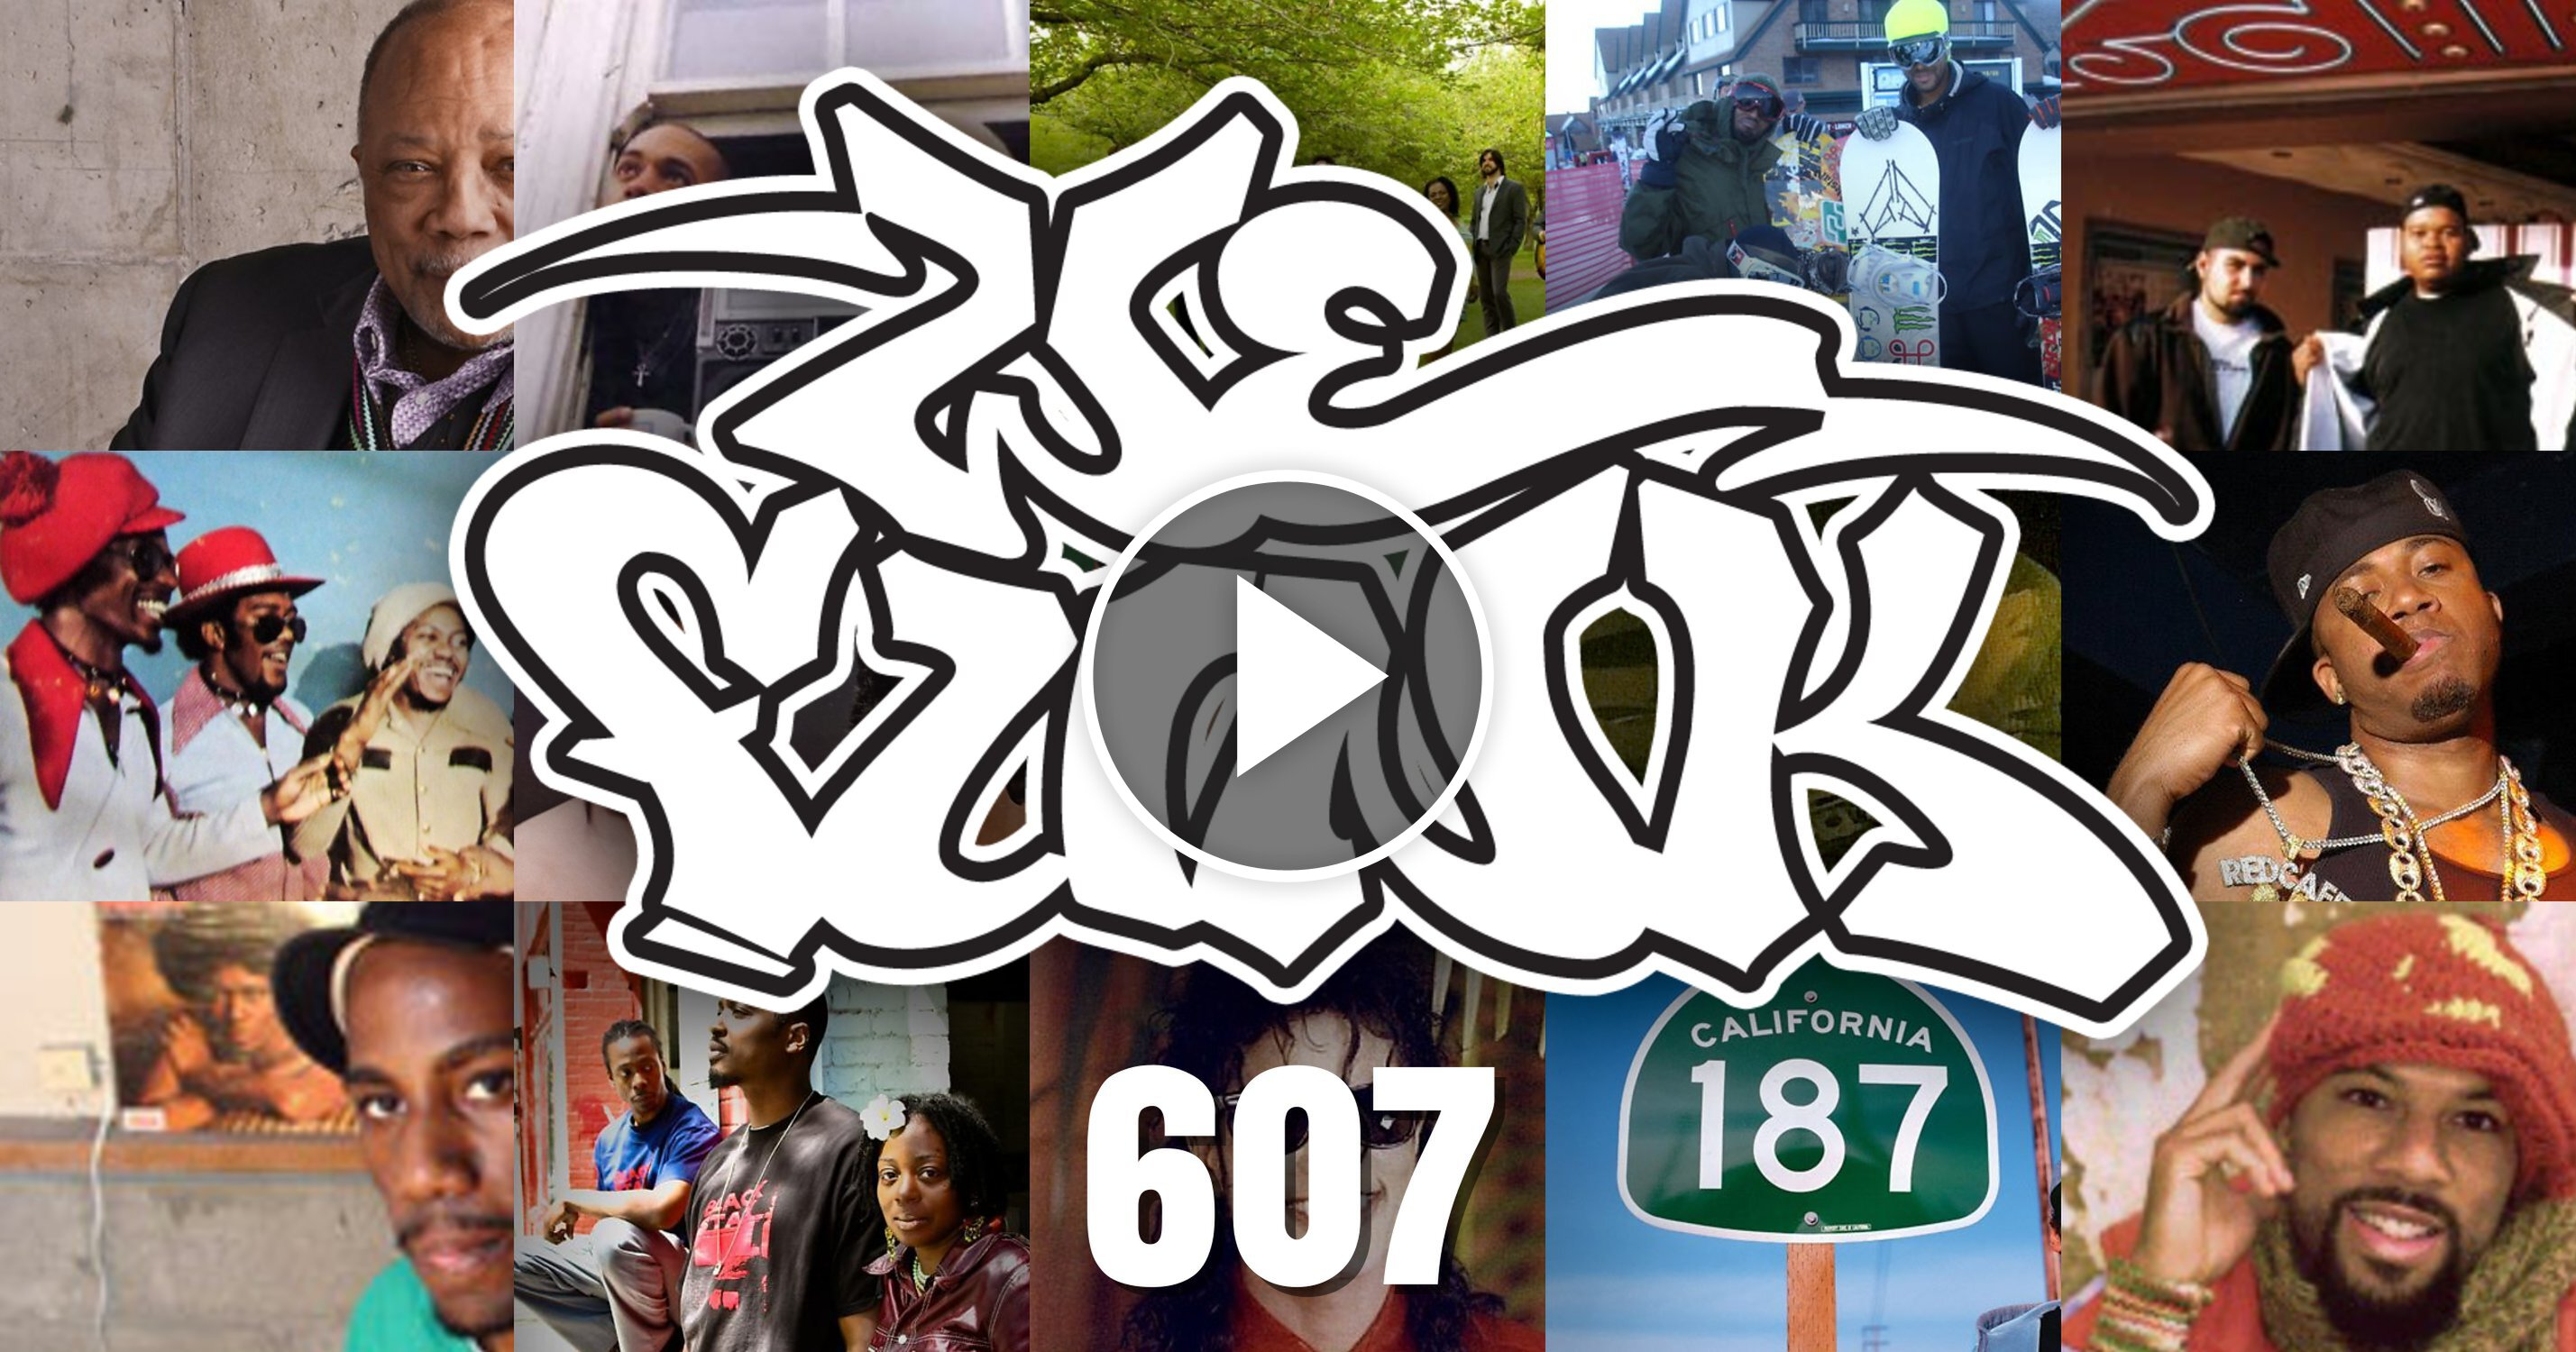 Wefunk show 607 for Classic house grooves dope jams nyc